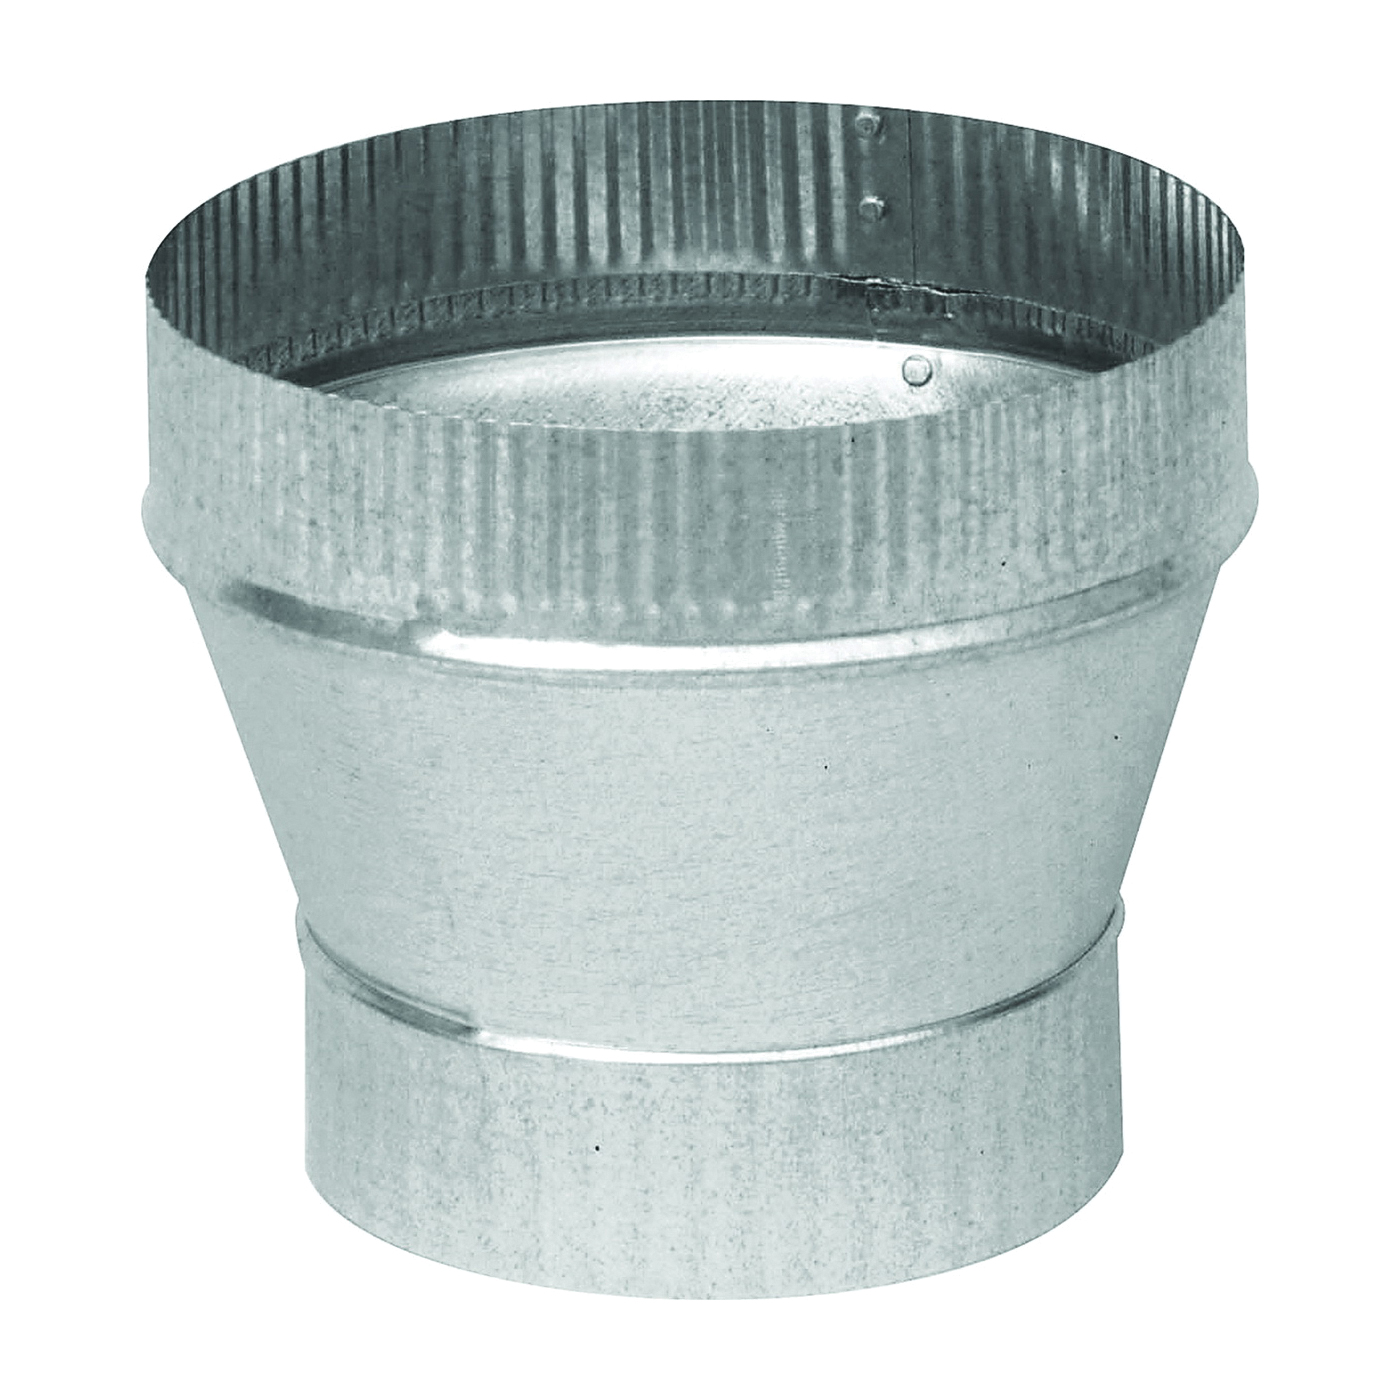 Picture of Imperial GV1358 Furnace Short Increaser, 5 to 6 in Connection, 24 Gauge, Galvanized